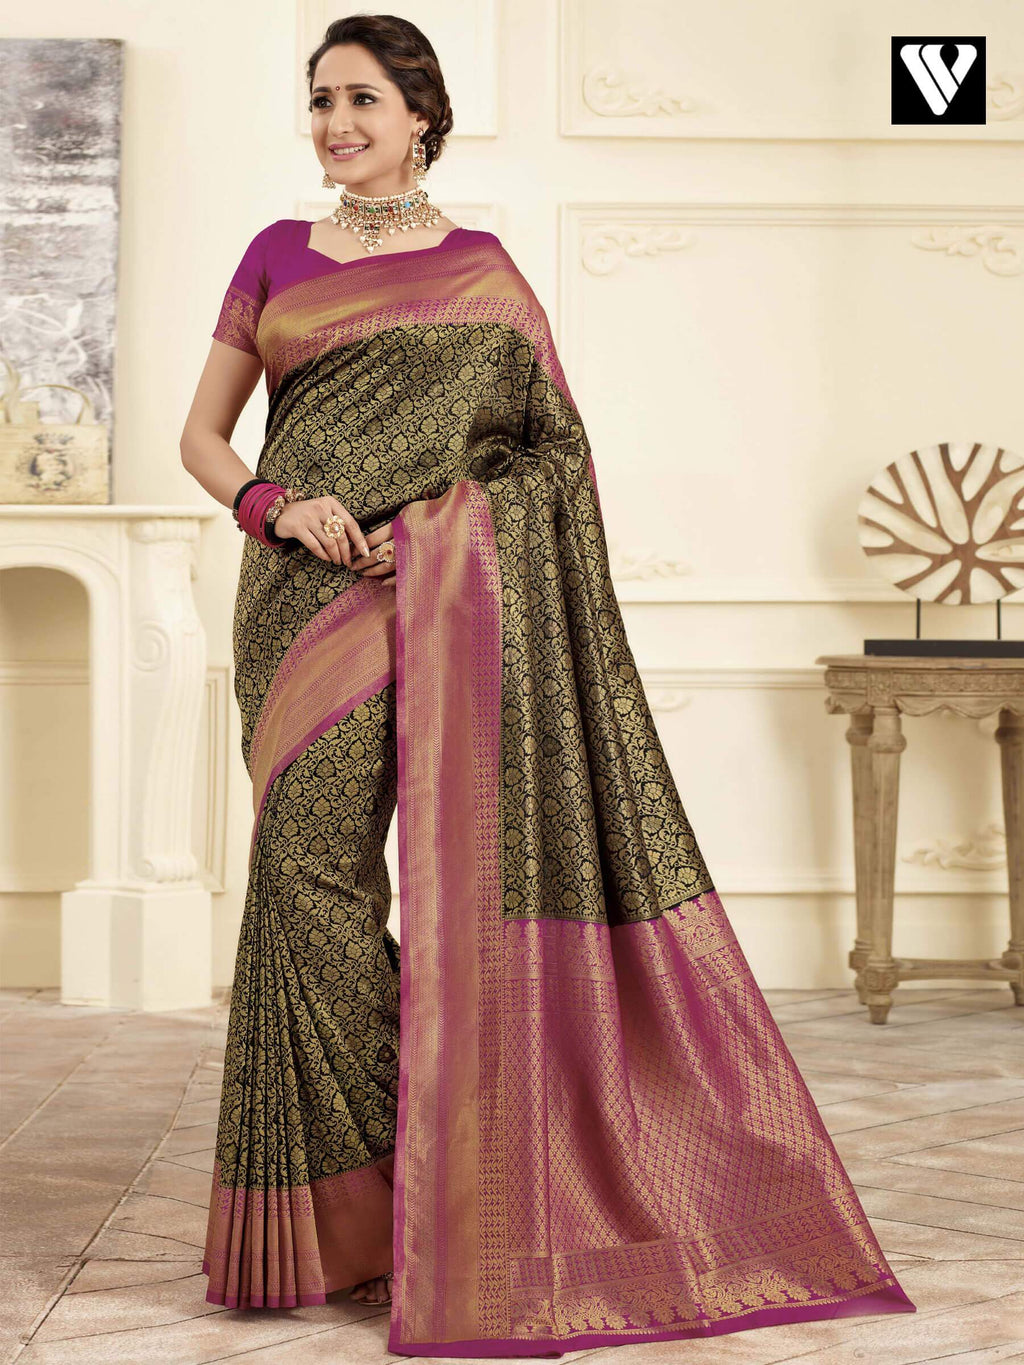 Designer Wedding Wear Banarasi Art Silk Sarees In Black Gold